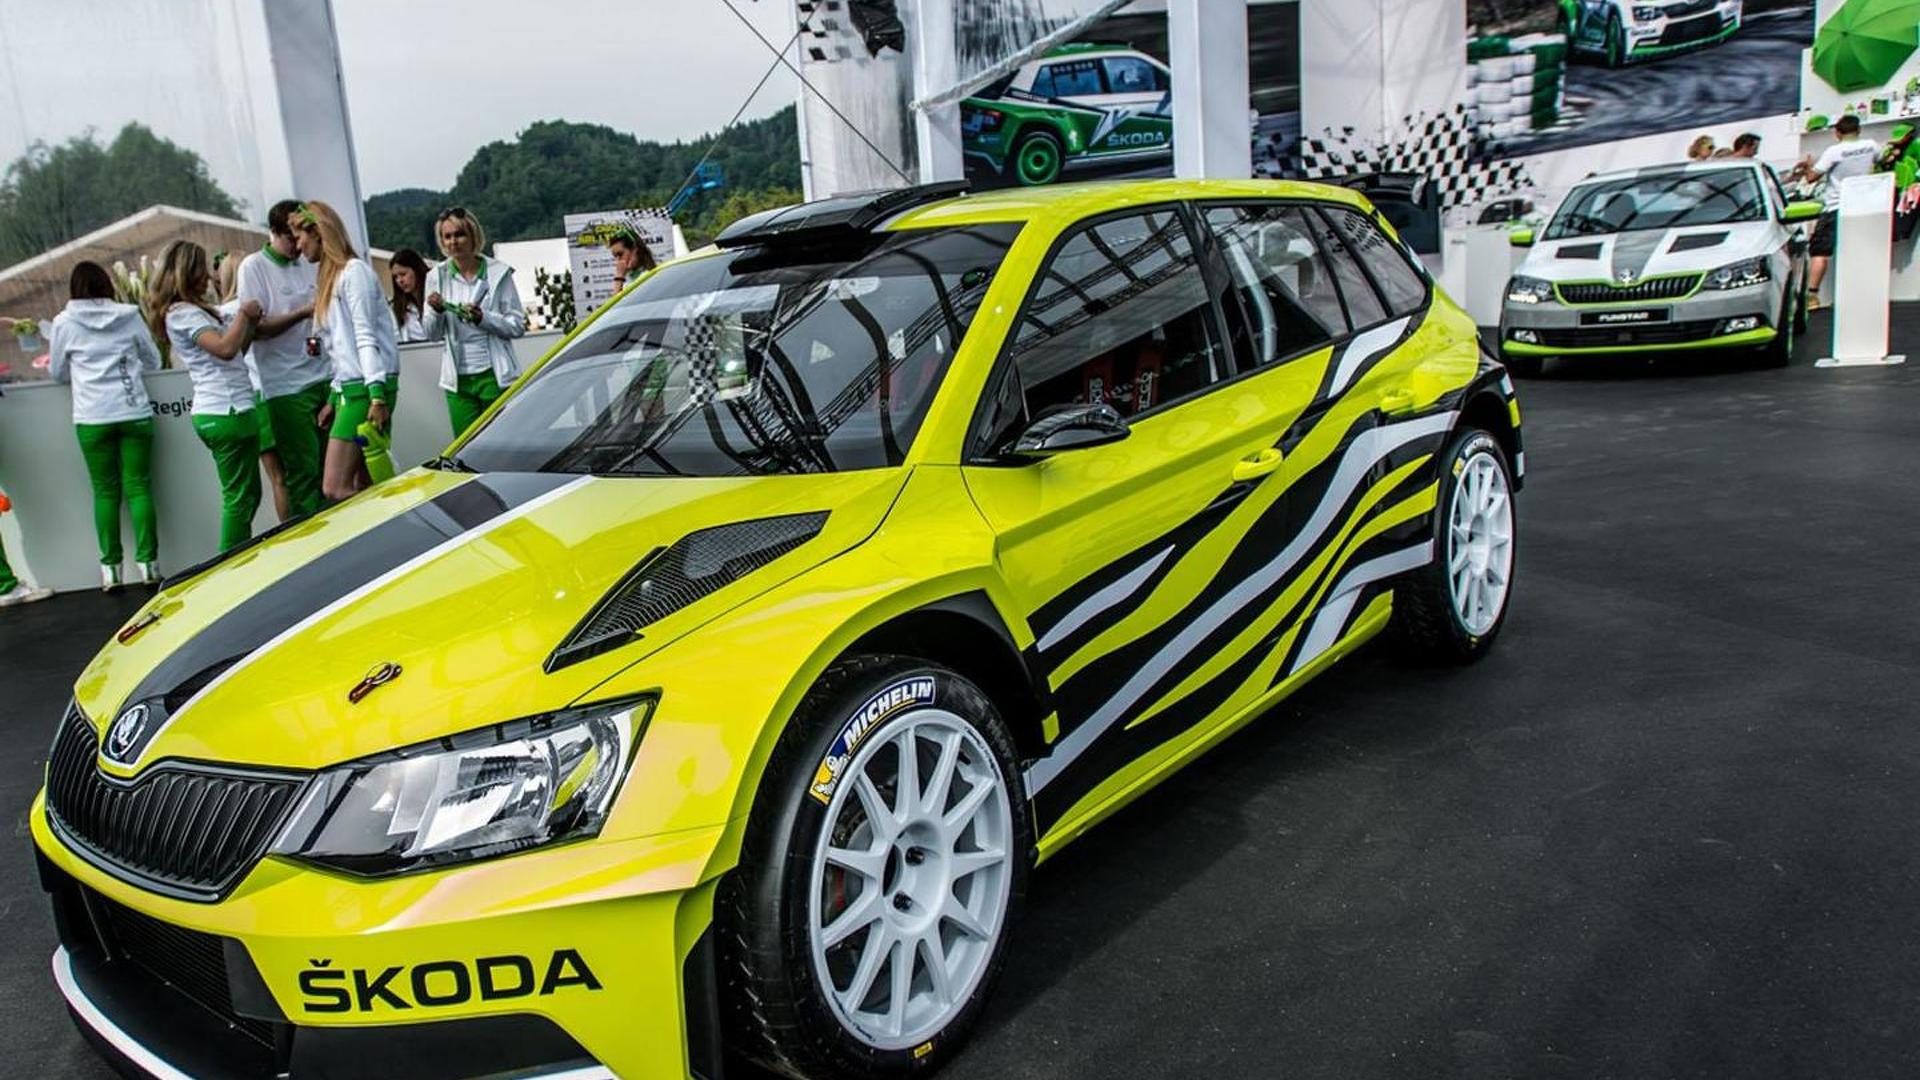 Skoda Fabia R5 Combi concept unveiled at Wörthersee